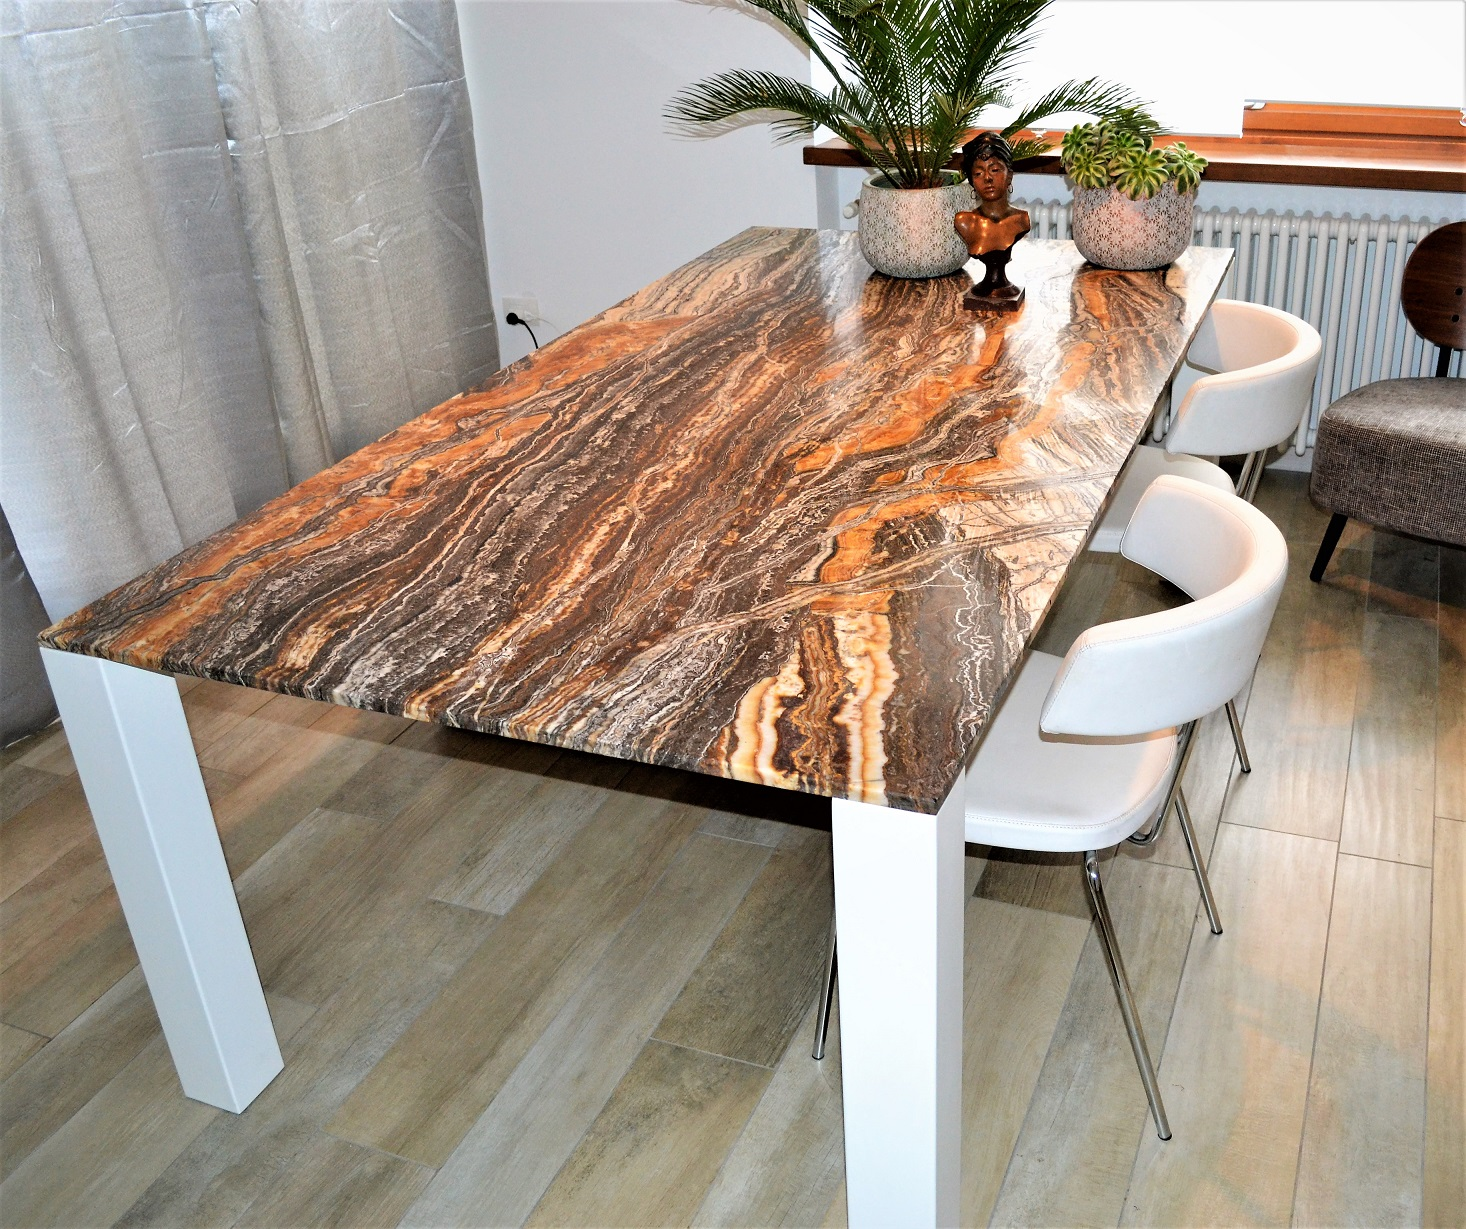 Canyon Onyx table - Pure Natural Design